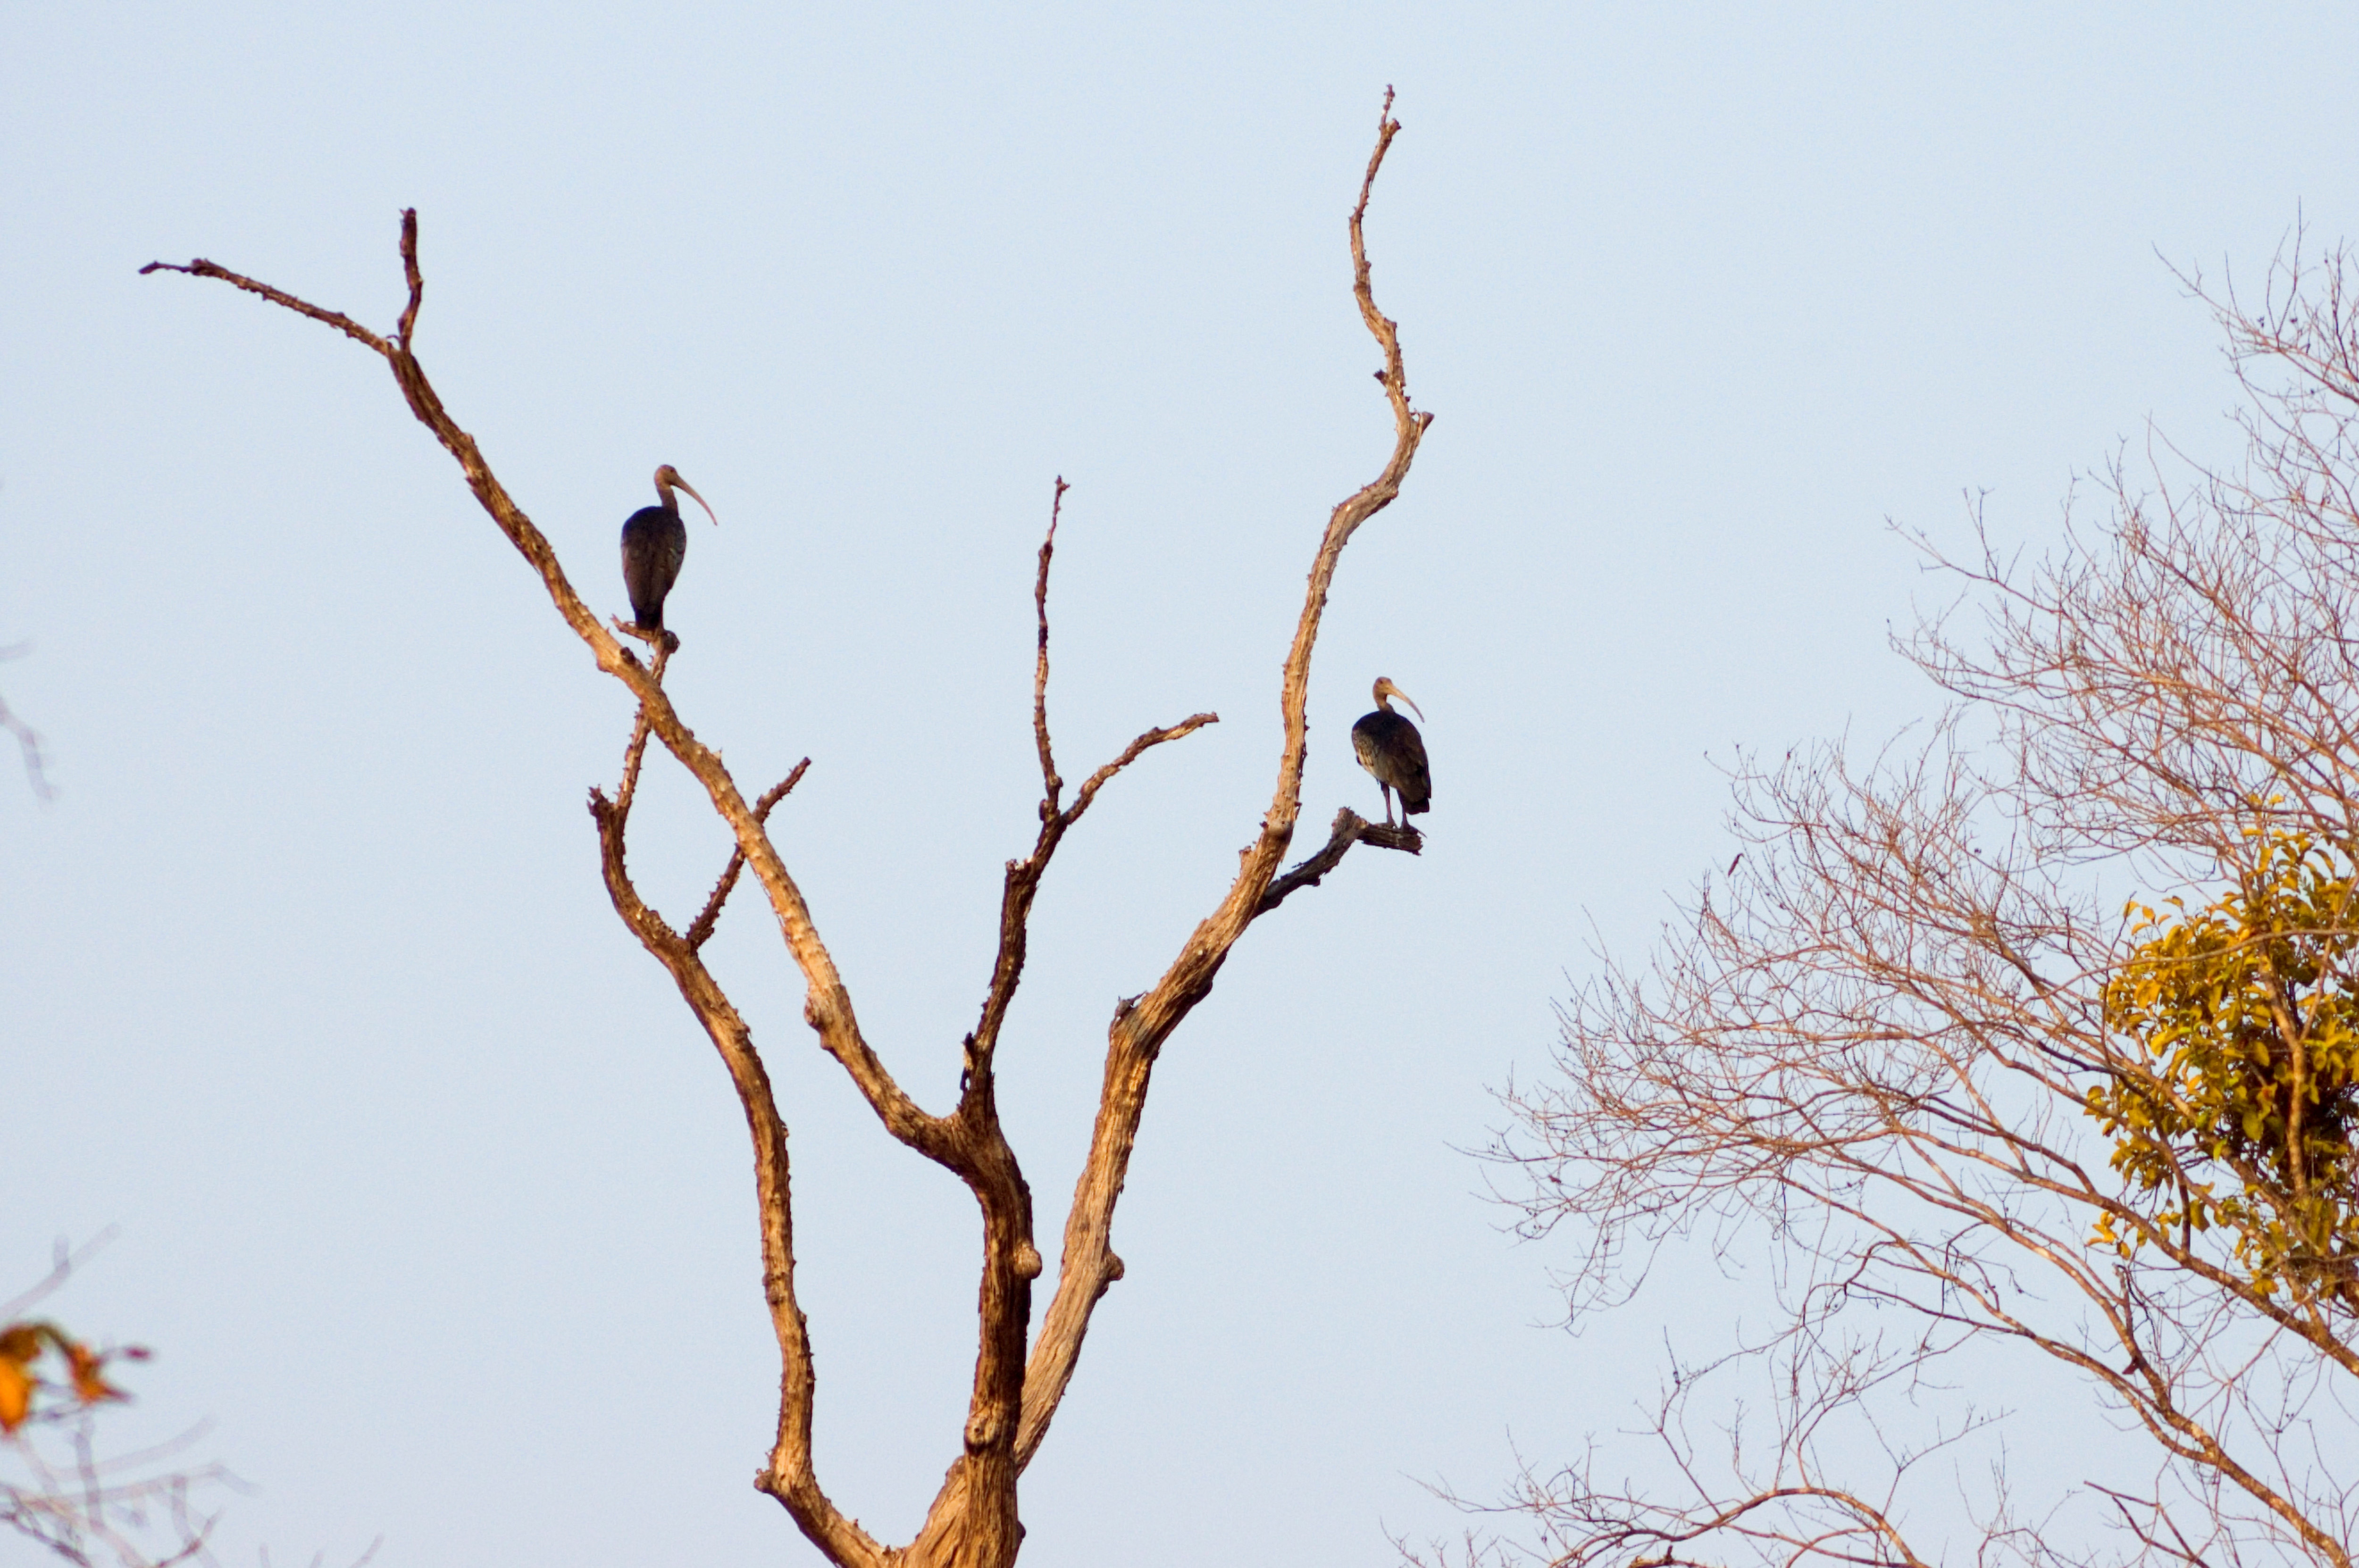 A pair of rare ibises in a tree in Cambodia in 2007